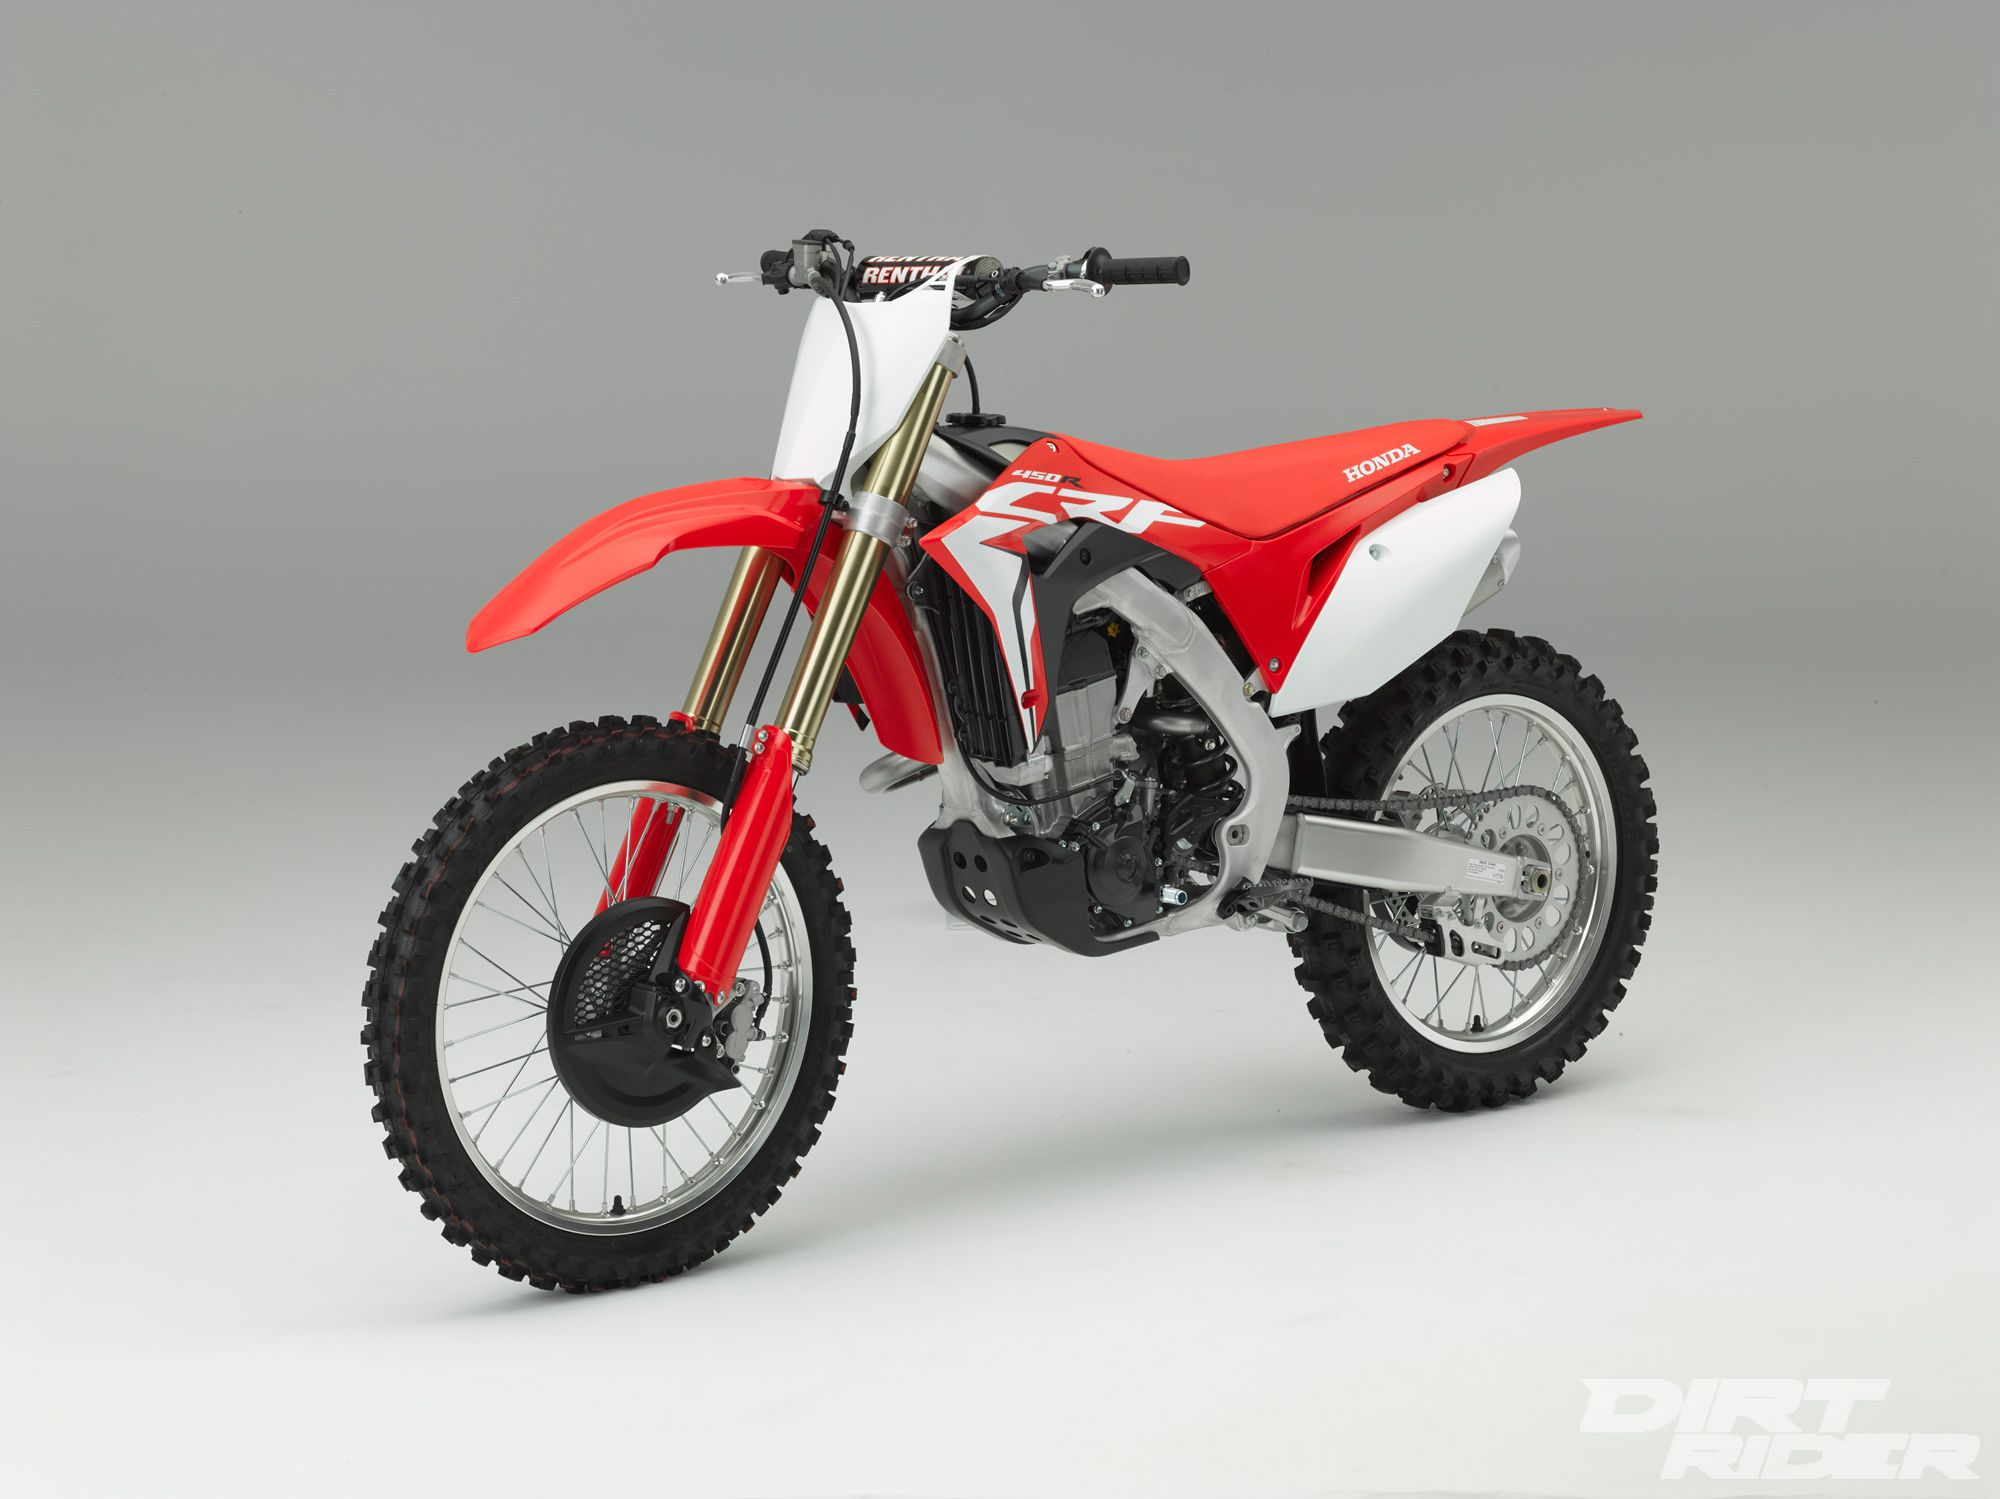 2017 Honda CRF450R & CRF450RX Announced | Dirt Rider